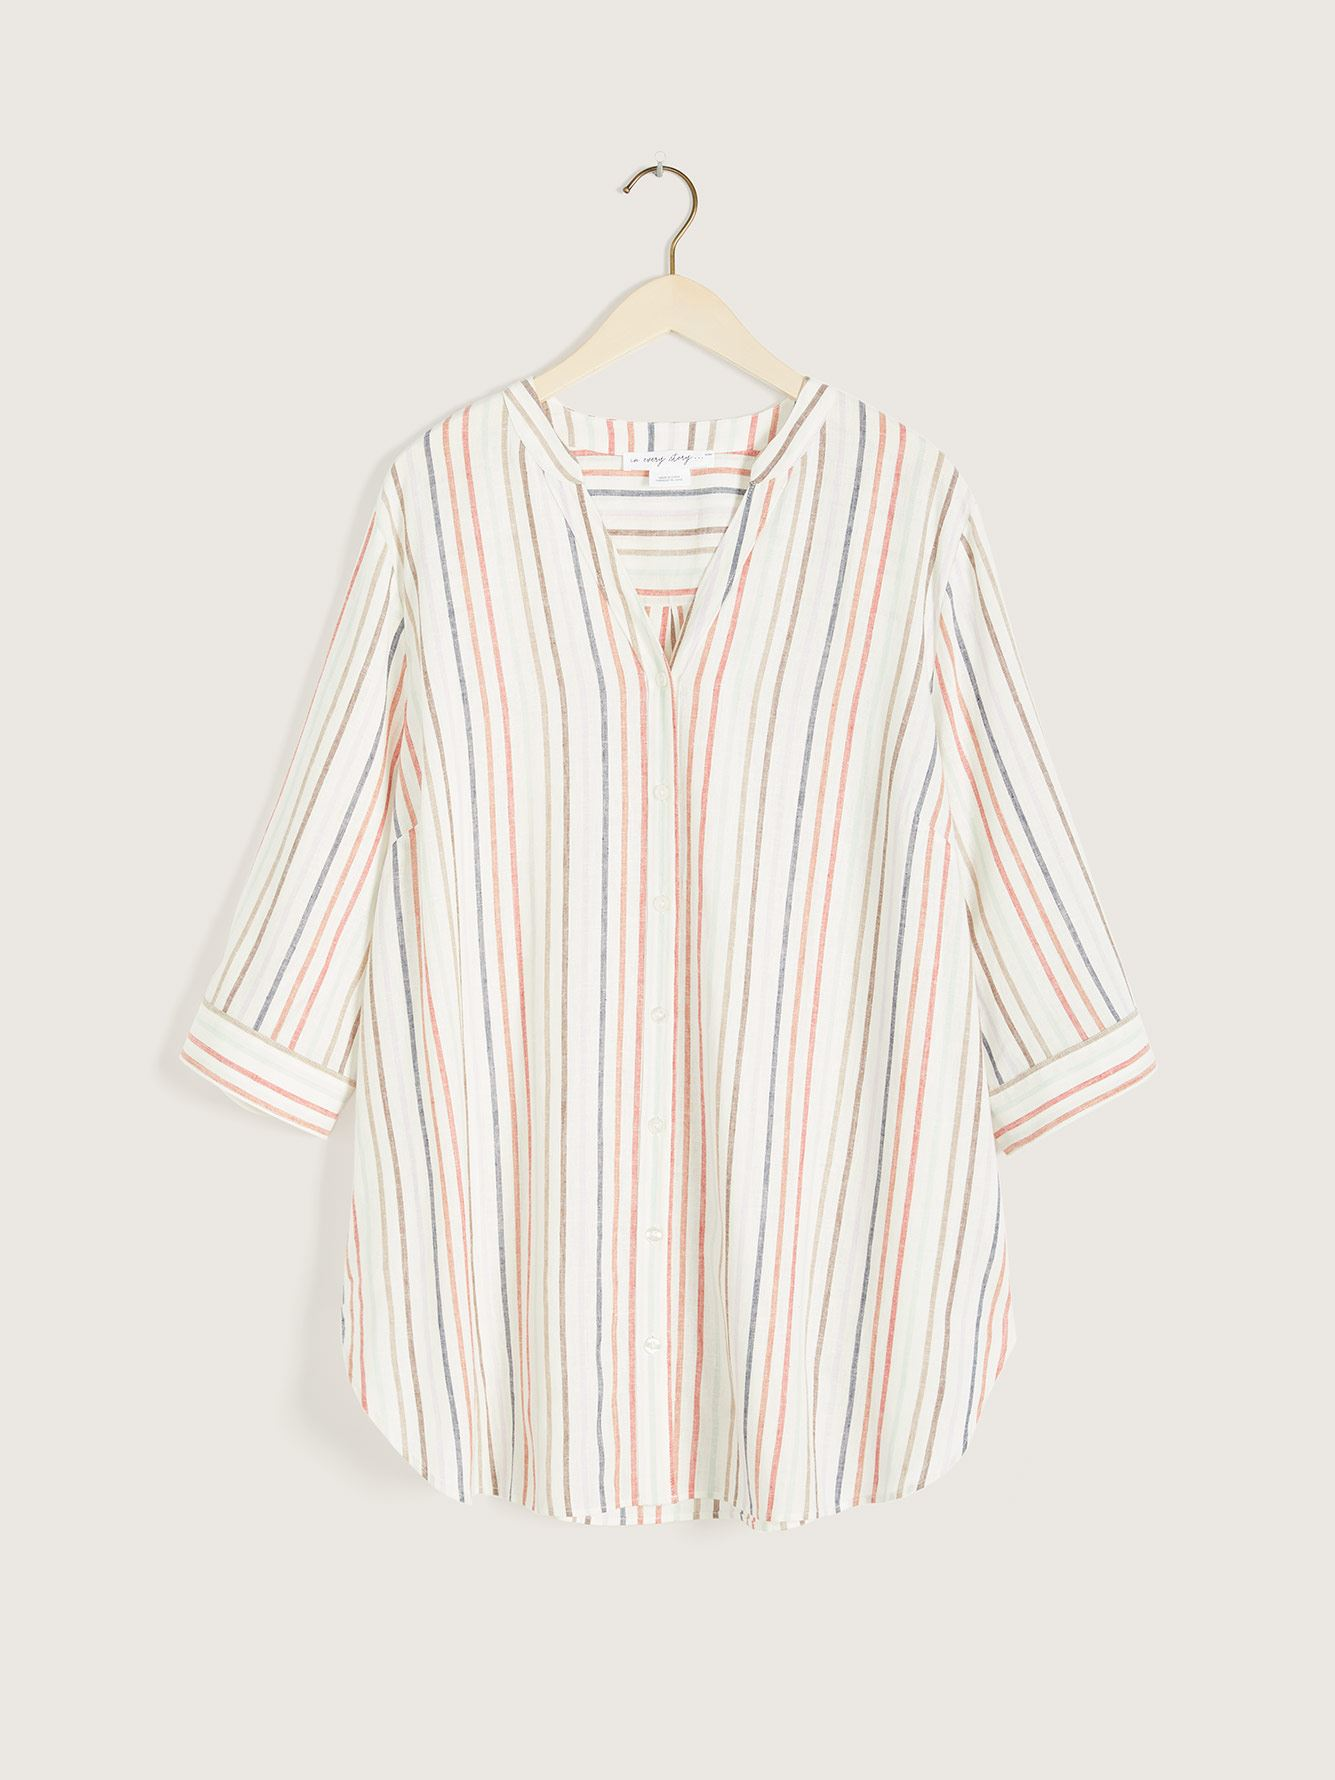 Striped Button-Down 3/4 Sleeve Blouse - In Every Story 7